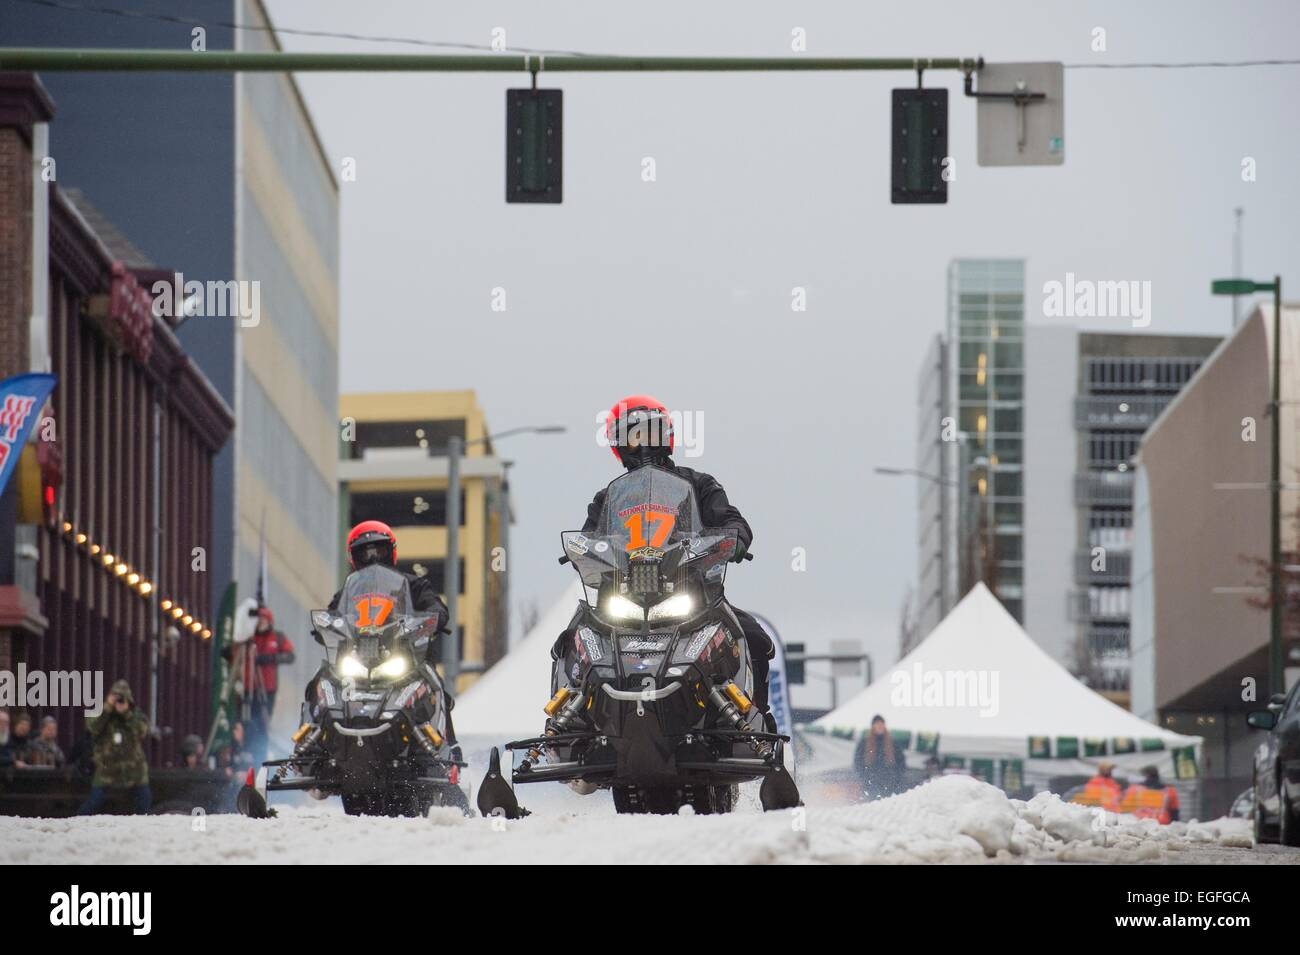 Competitors at the start the 2,000 mile Iron Dog race February 21, 2015 in Anchorage, Alaska. The Iron Dog is a - Stock Image